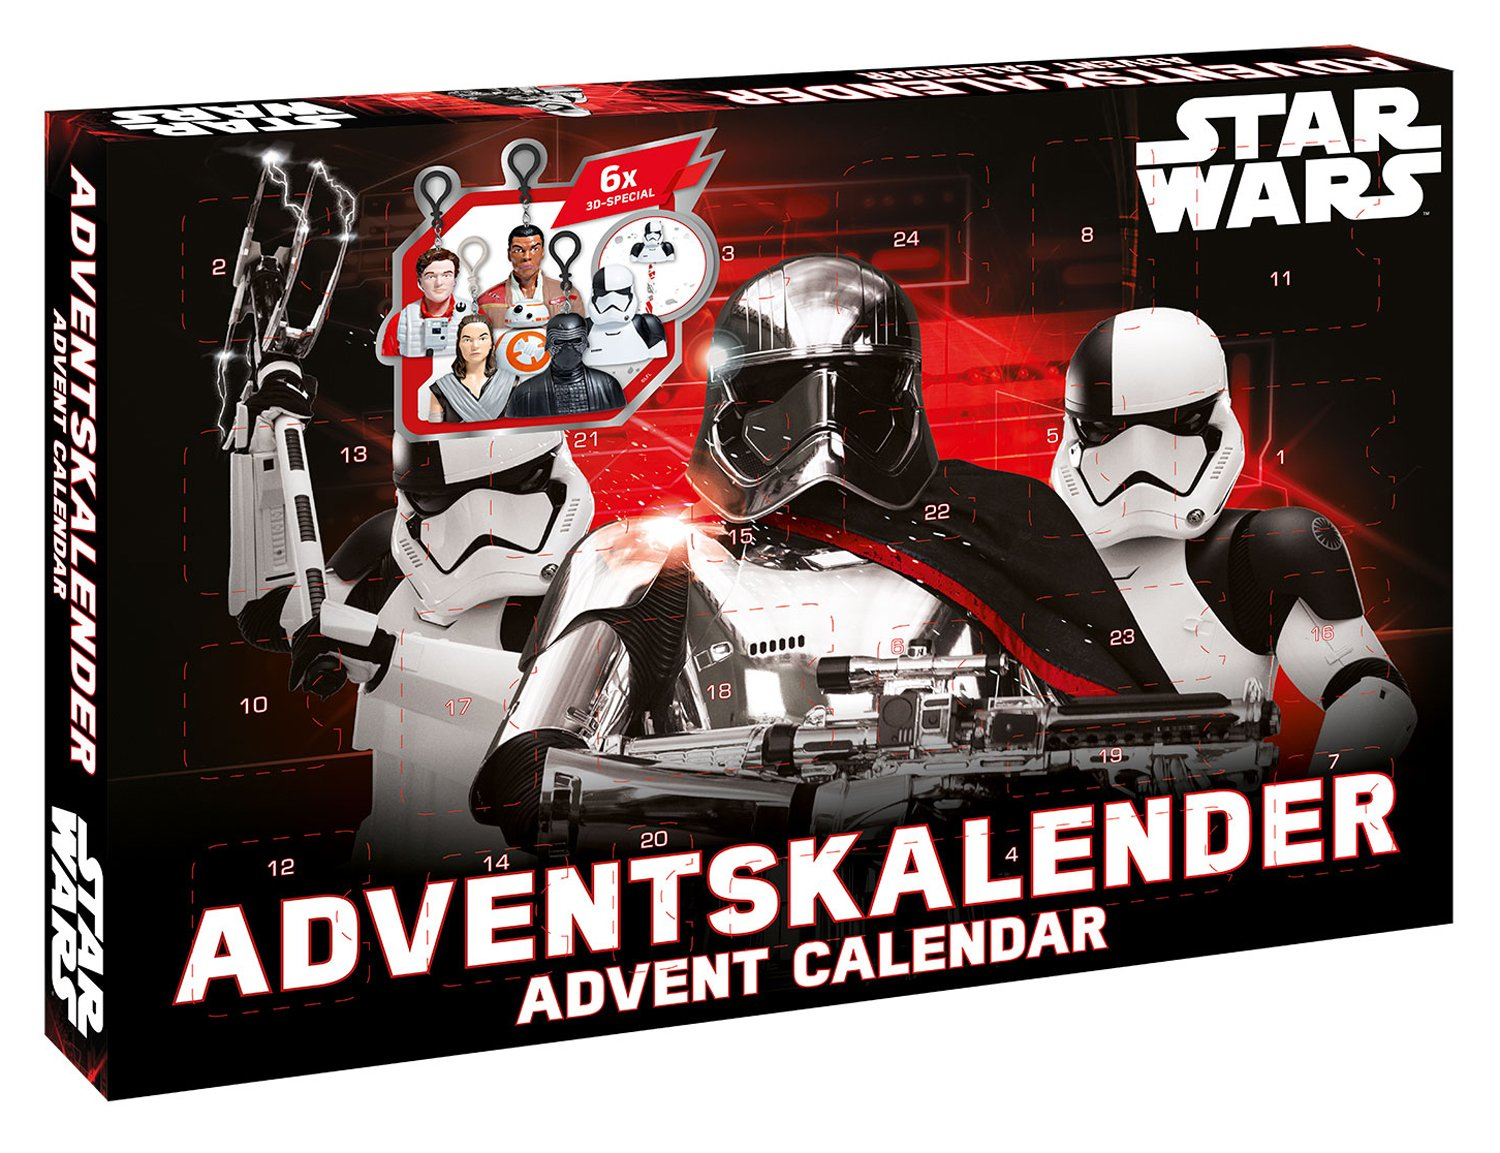 Craze 57385 Star Wars Adventskalender, Bunt Craze_57385